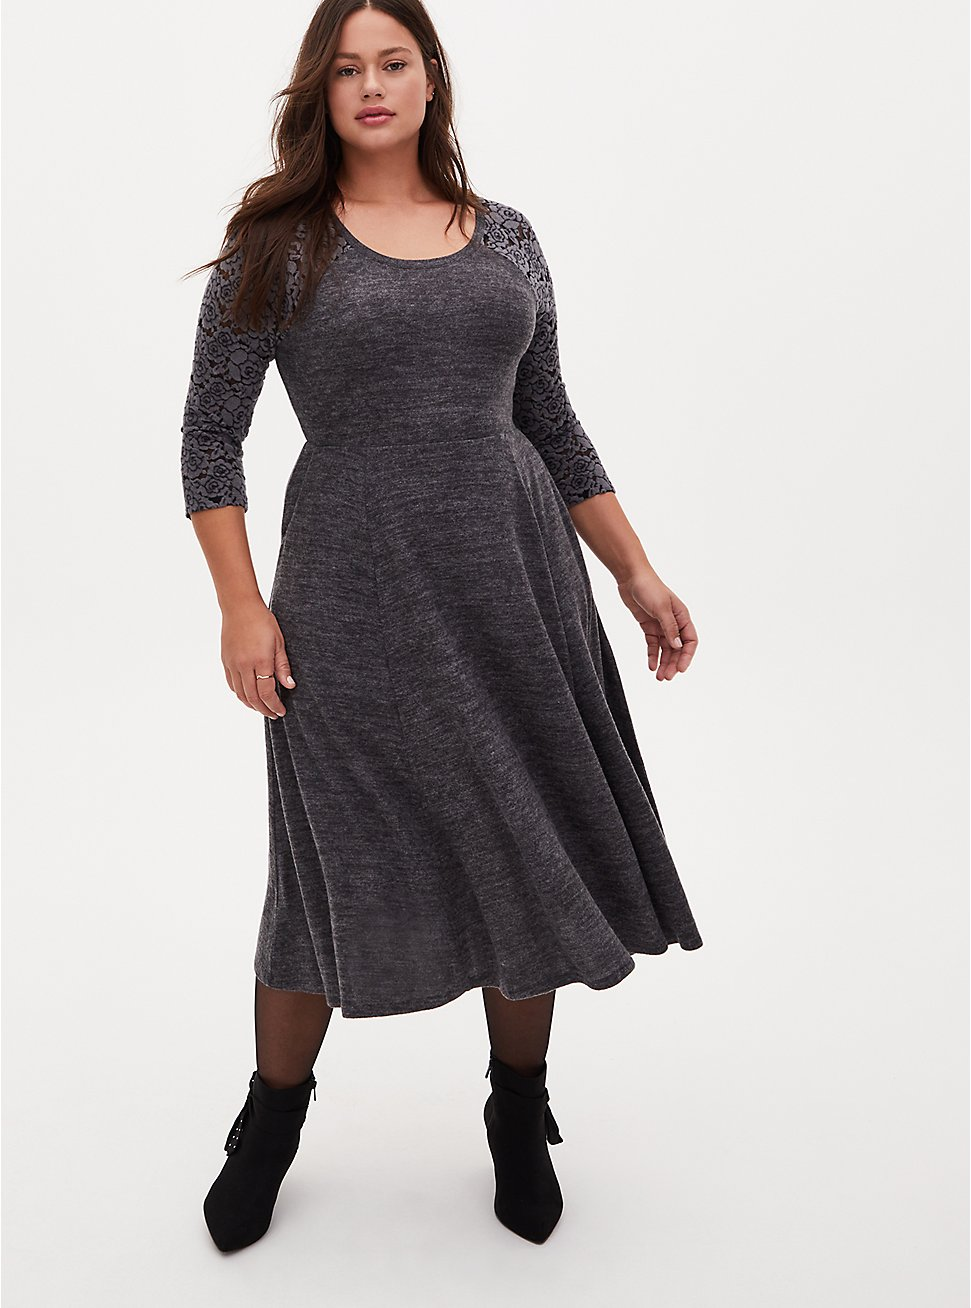 Super Soft Plush Charcoal Grey Lace Skater Dress, CHARCOAL, hi-res